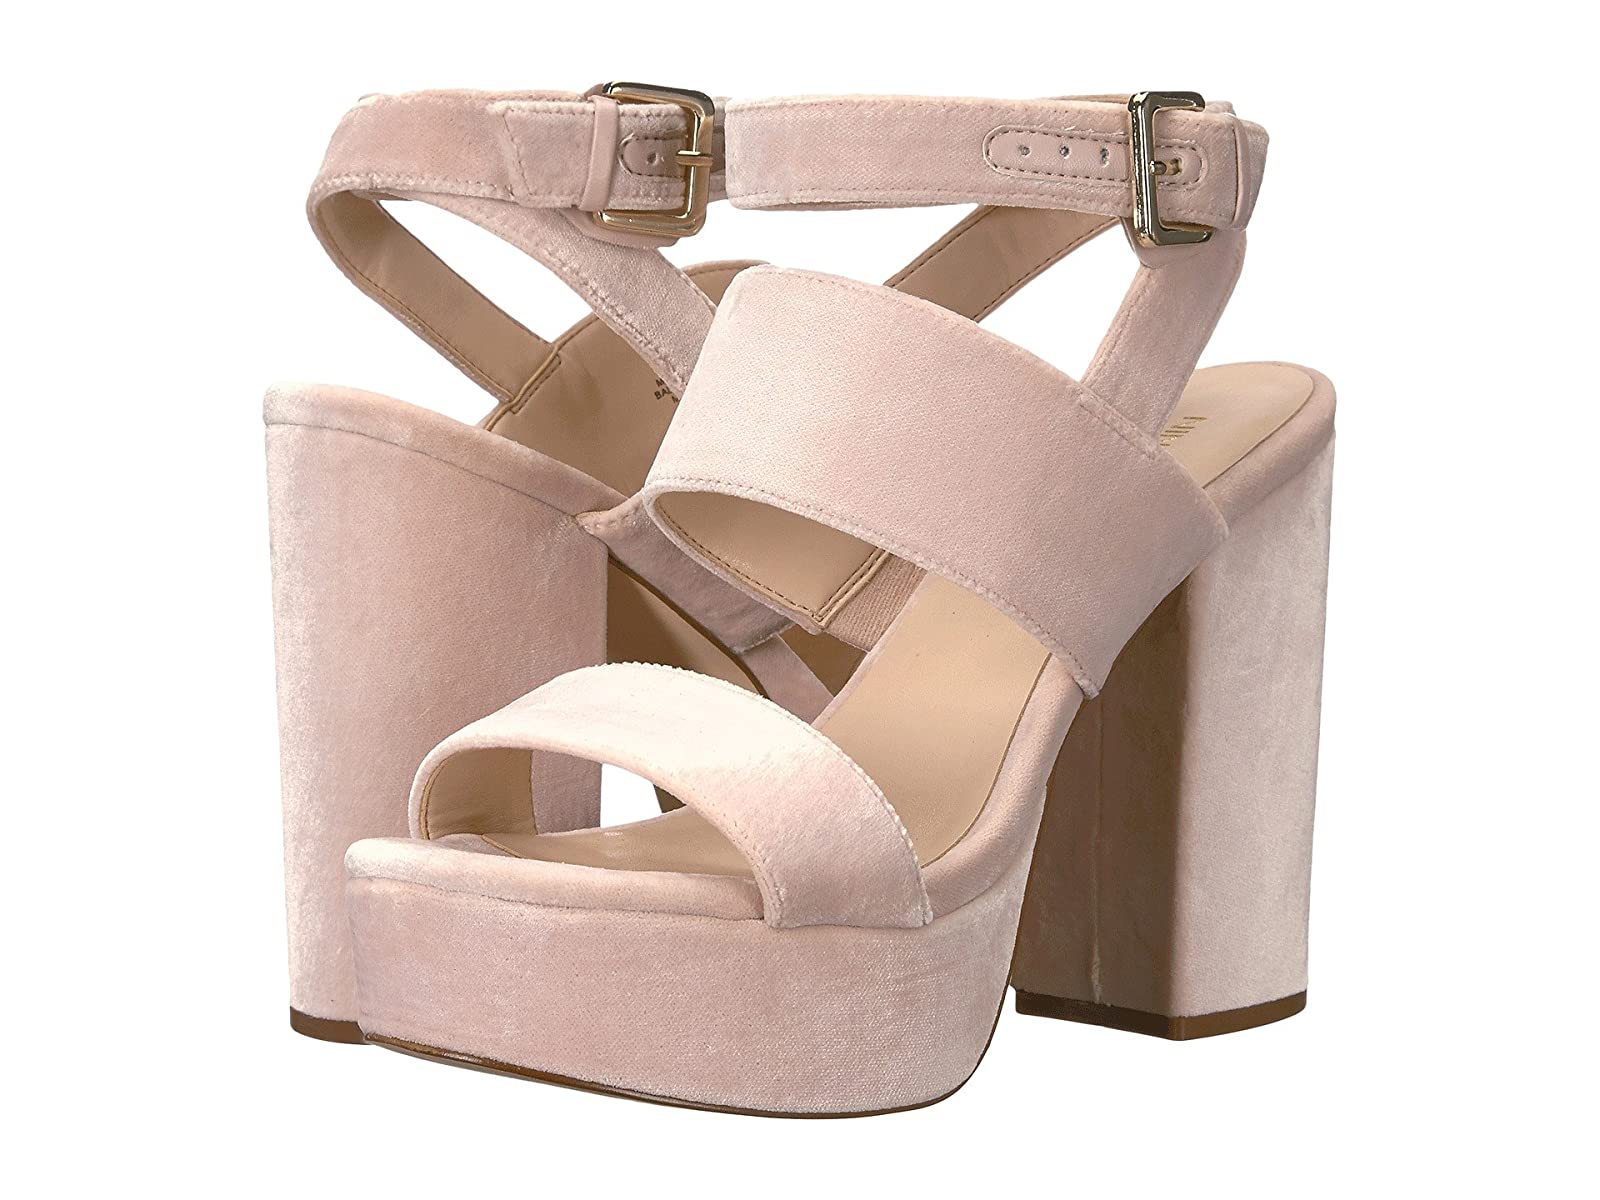 Nine West KelsoCheap and distinctive eye-catching shoes